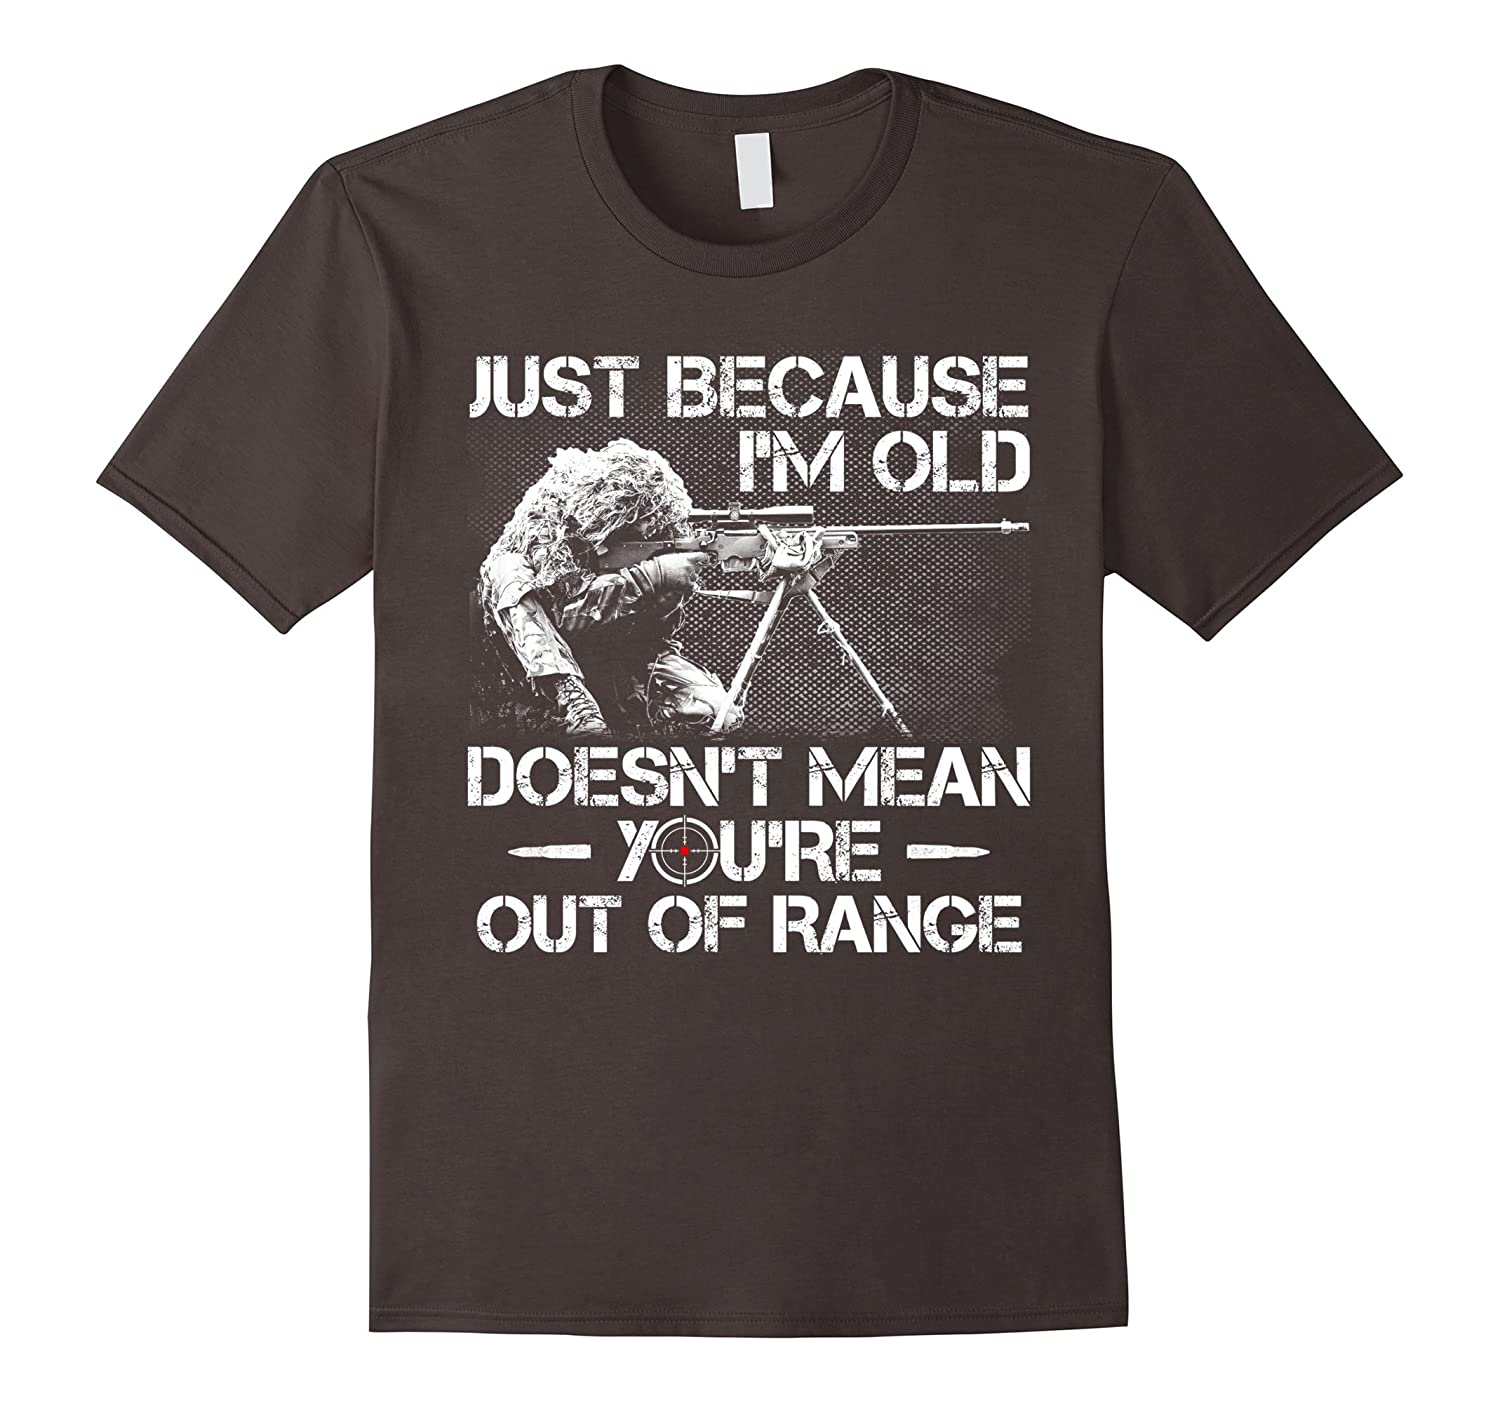 Just Because I'm Old Doesn't Mean You're Out of Range Tshirt-FL